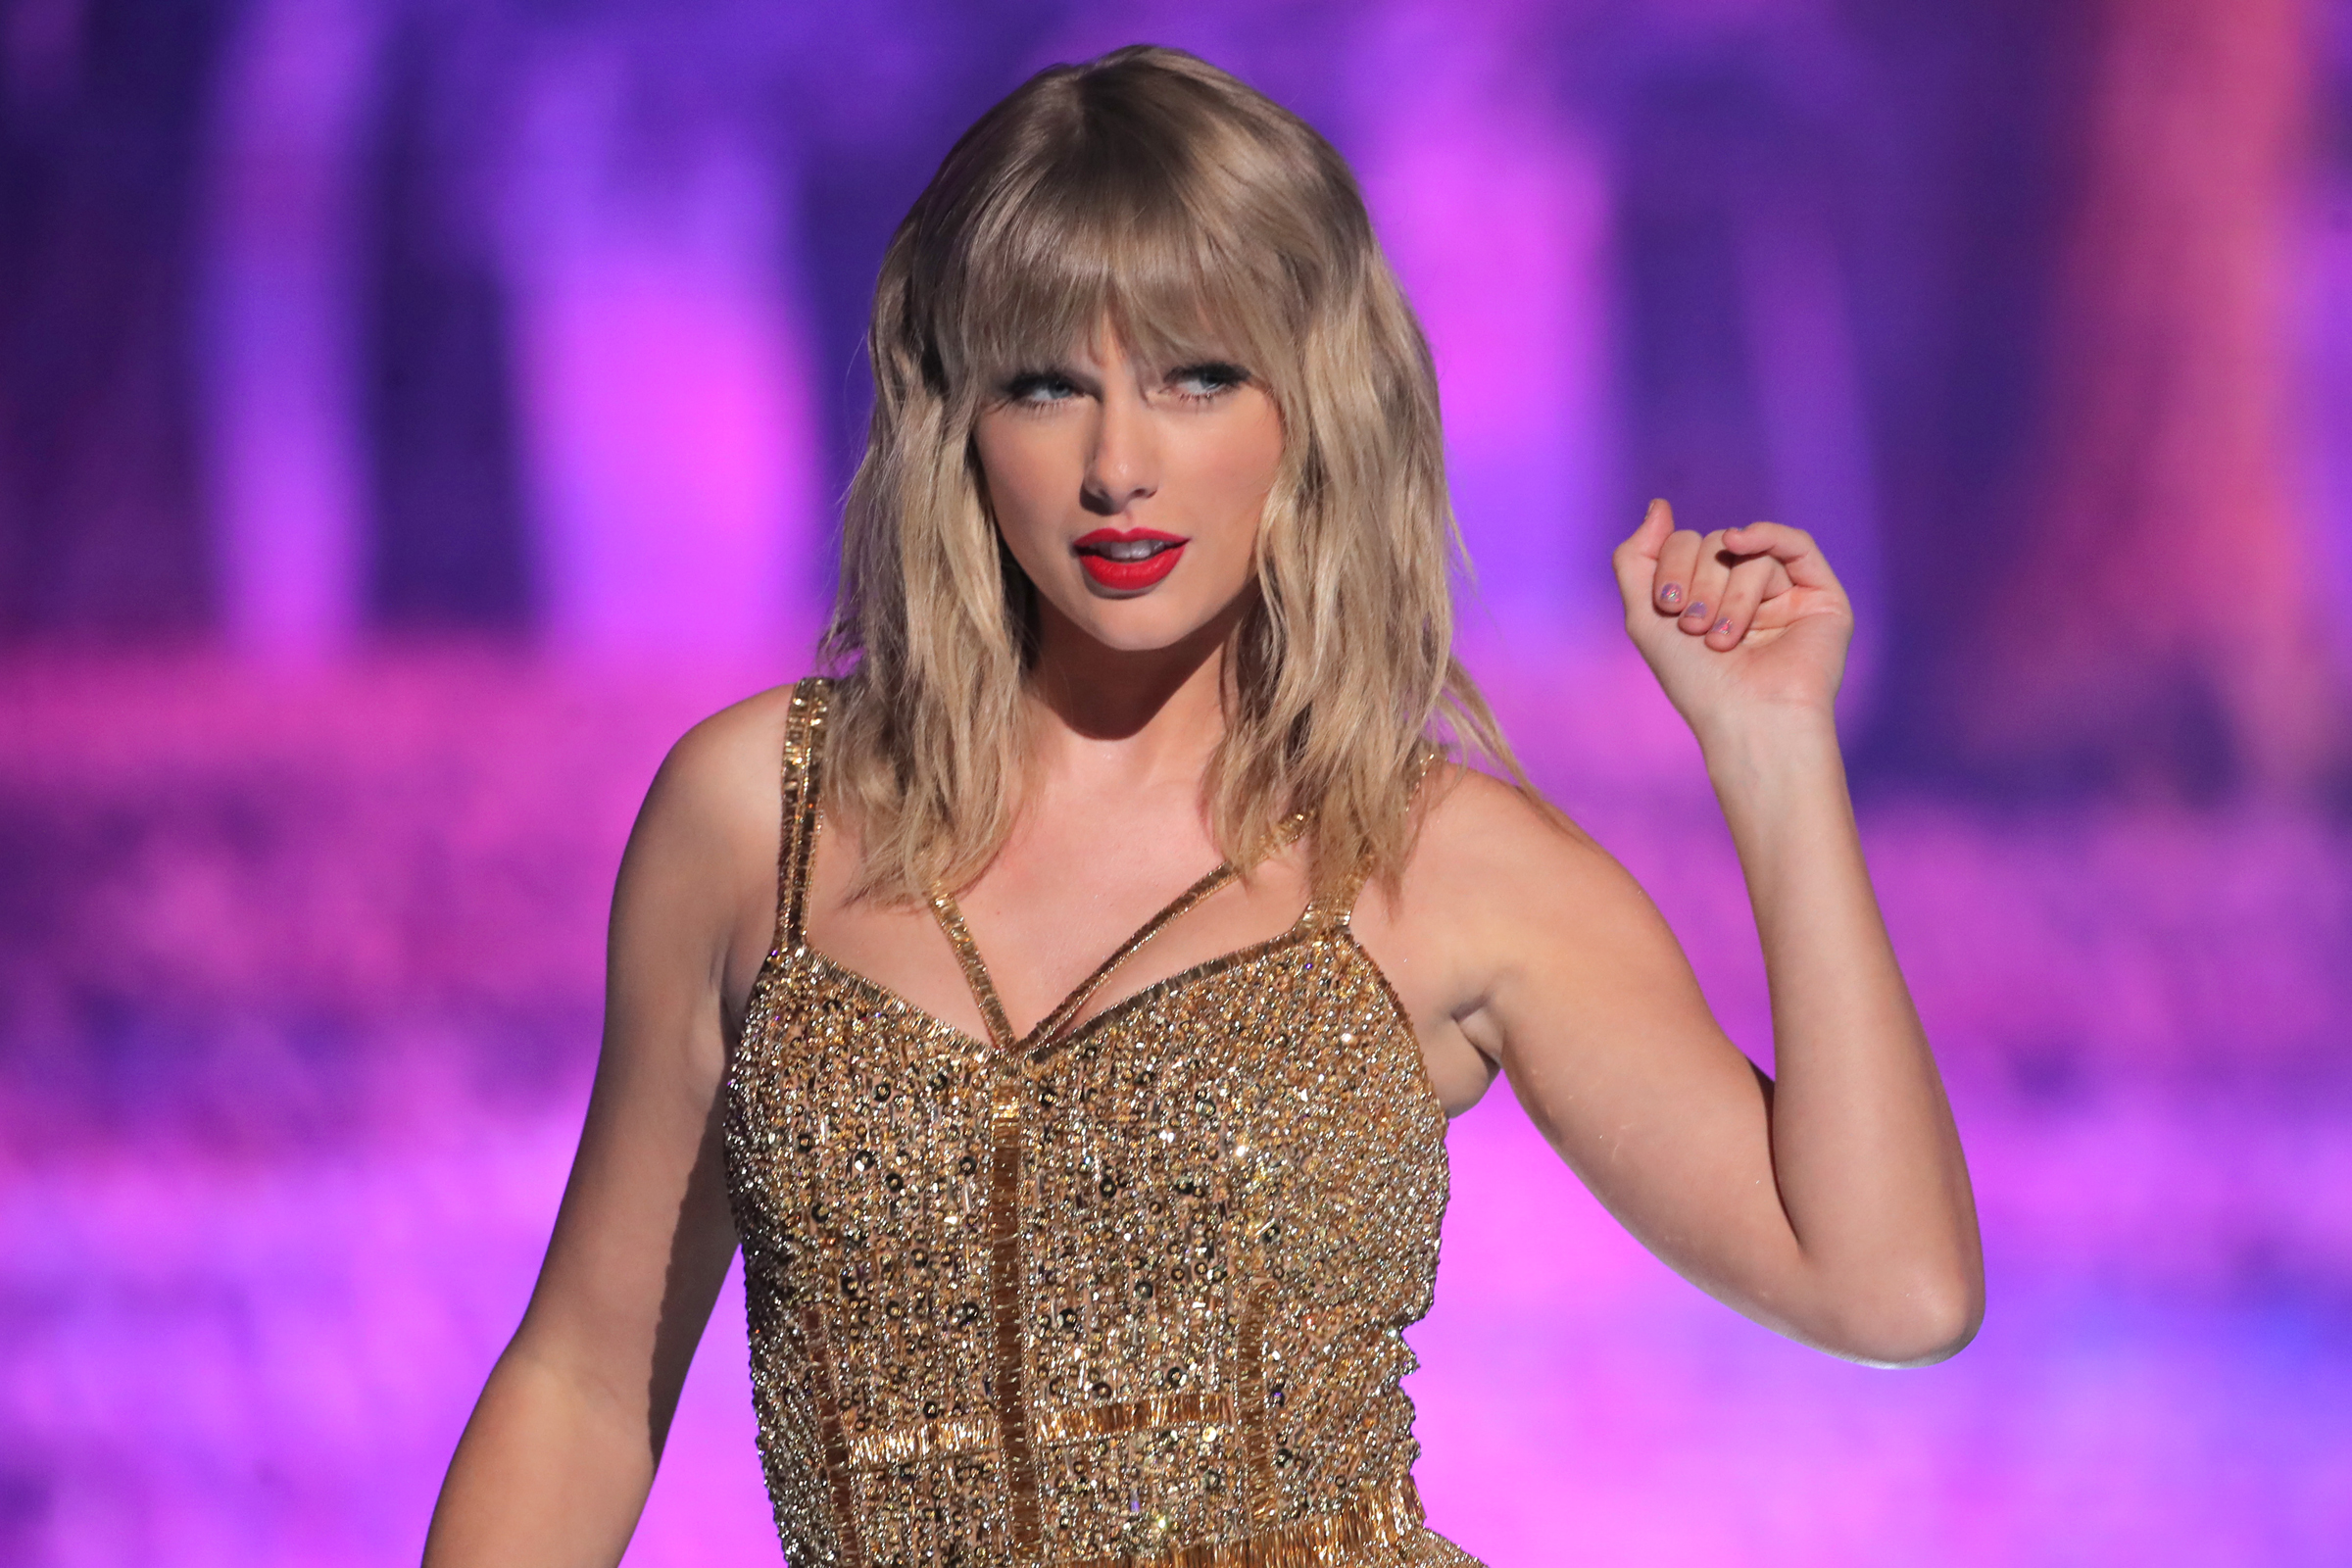 Mandatory Credit: Photo by Chelsea Lauren/Shutterstock (10481442fs) Taylor Swift 47th Annual American Music Awards, Show, Microsoft Theater, Los Angeles, USA - 24 Nov 2019